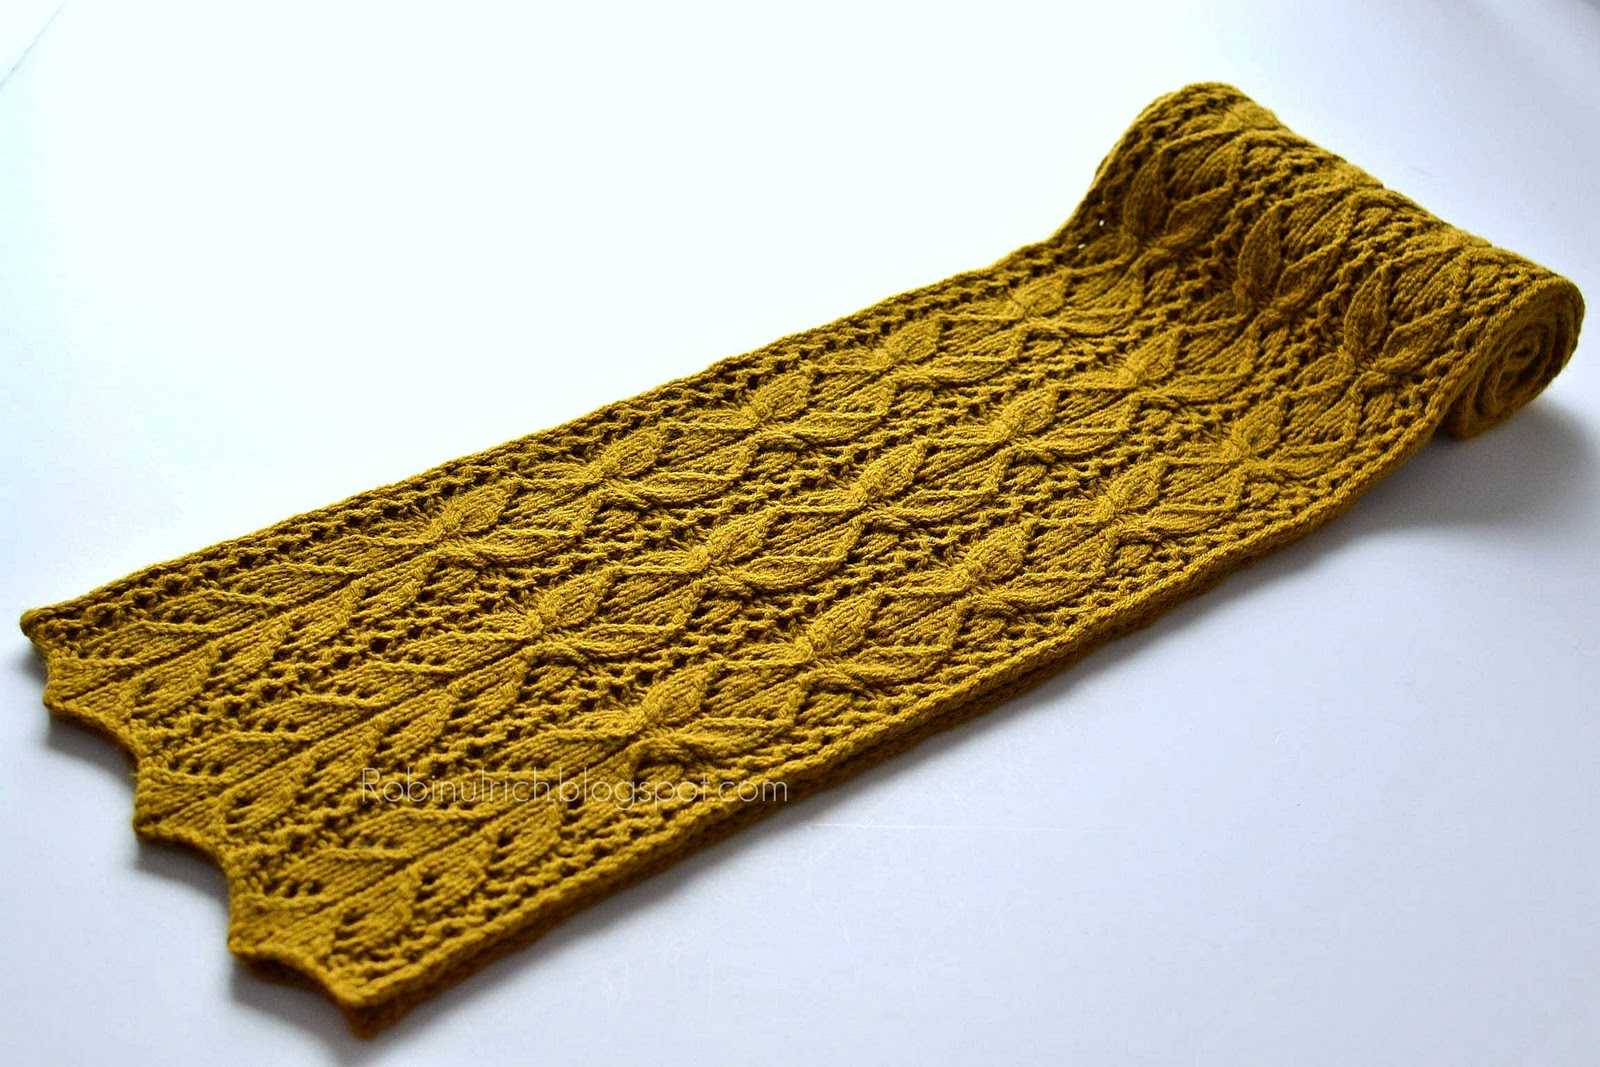 New Knitting Patterns : Robin Ulrich Studio: New Bosc Scarf Knitting Pattern & Recipe